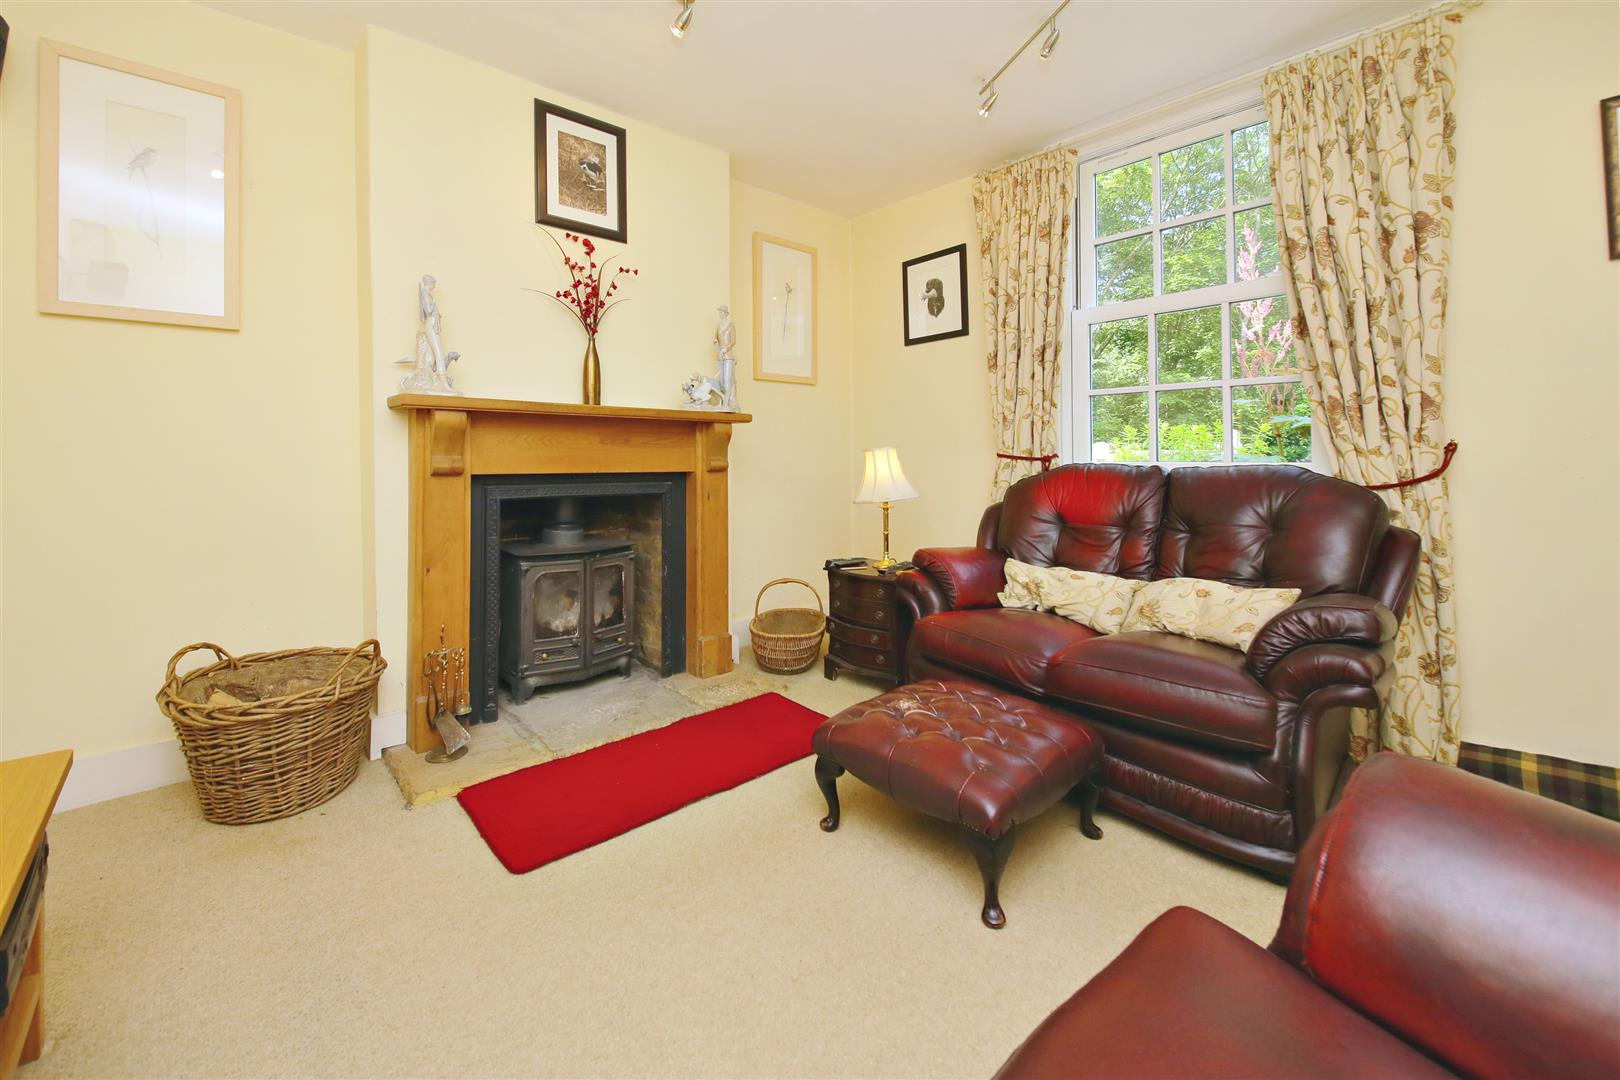 3 bed for sale in Station Road, Bricket Wood - (Property Image 2)